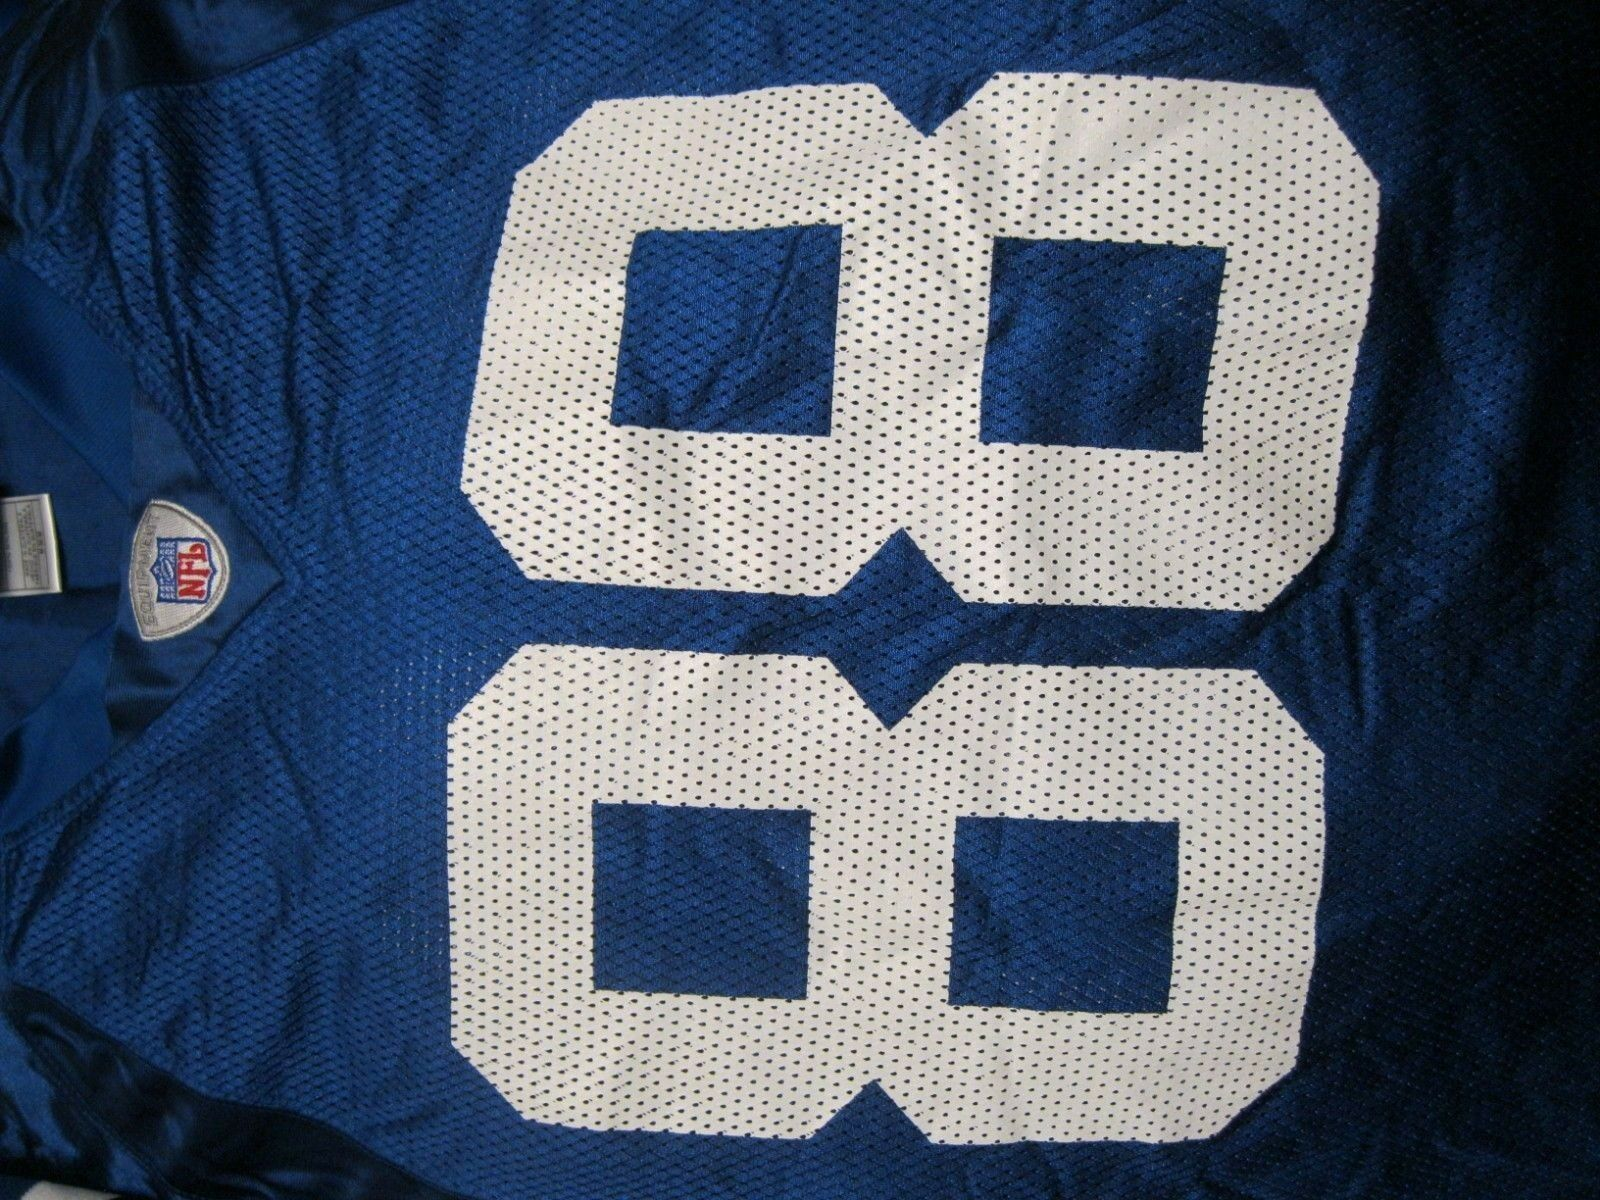 Indianapolis Colts #88 Marvin Harrison Size M Reebok jersey NFL